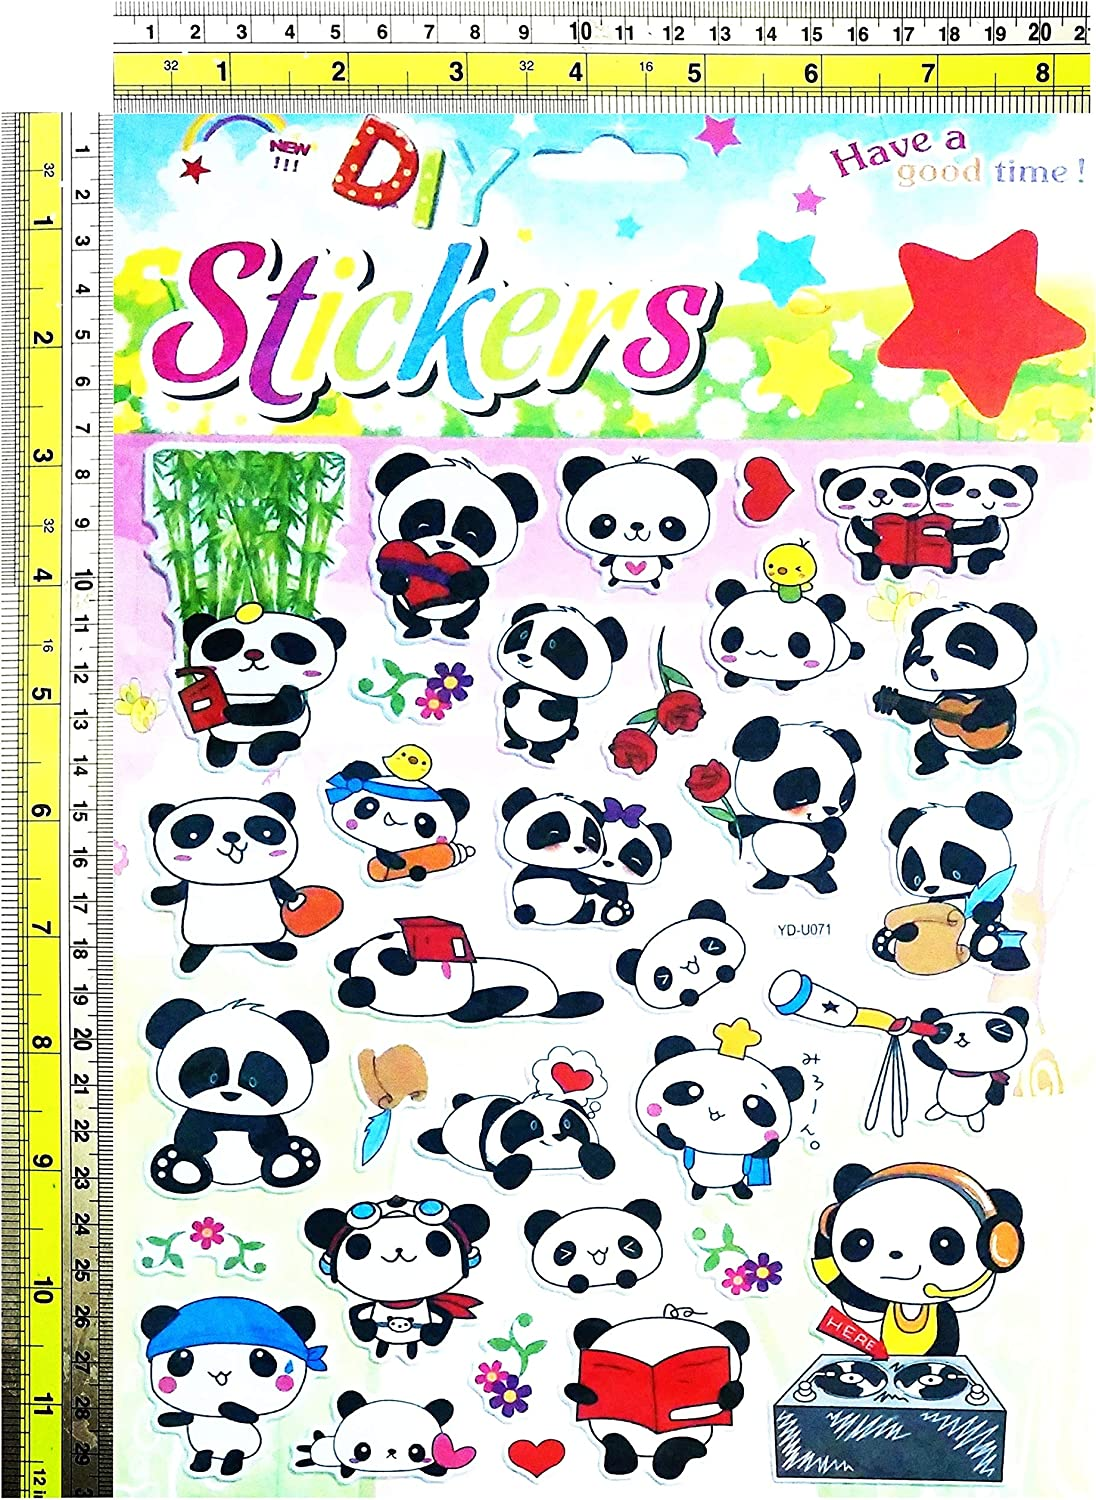 12 Sheets PANDA Stickers Sheets Childrens Party Bag Fillers Kids Craft Toys